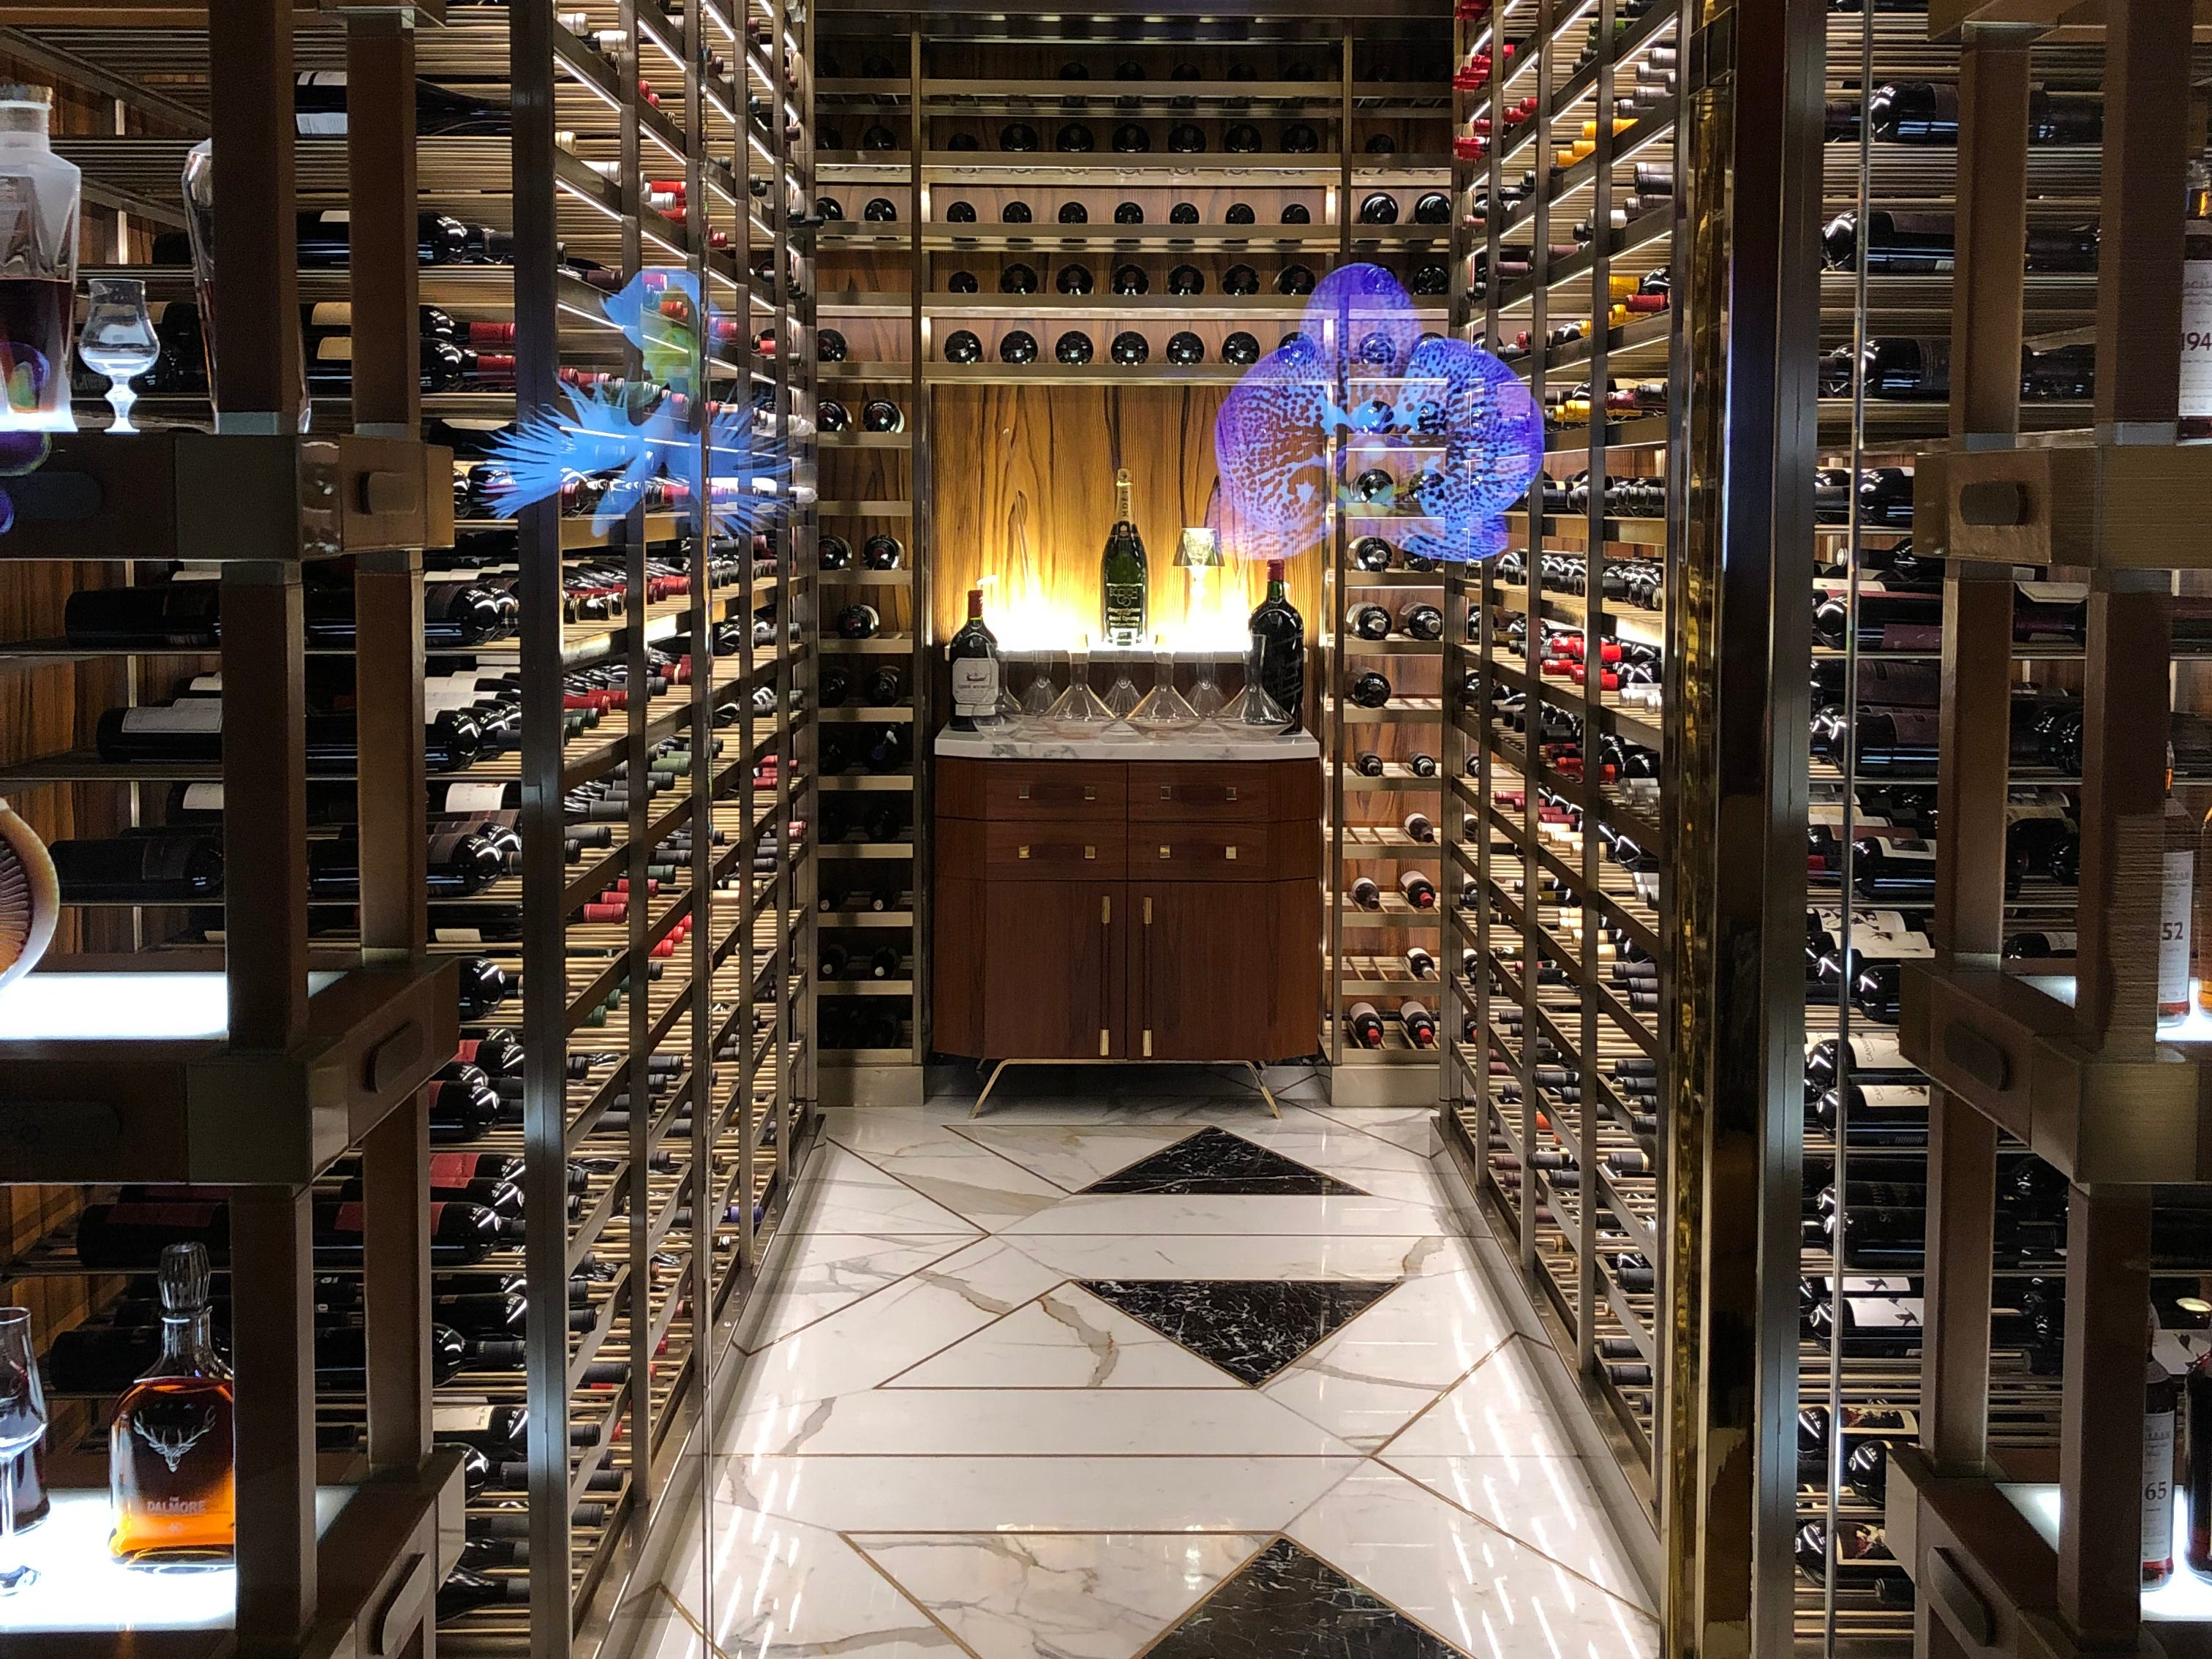 A look at the collection of scotch inside Scotch 80 Prime, the steakhouse inside the Palms Casino Resort in Las Vegas.